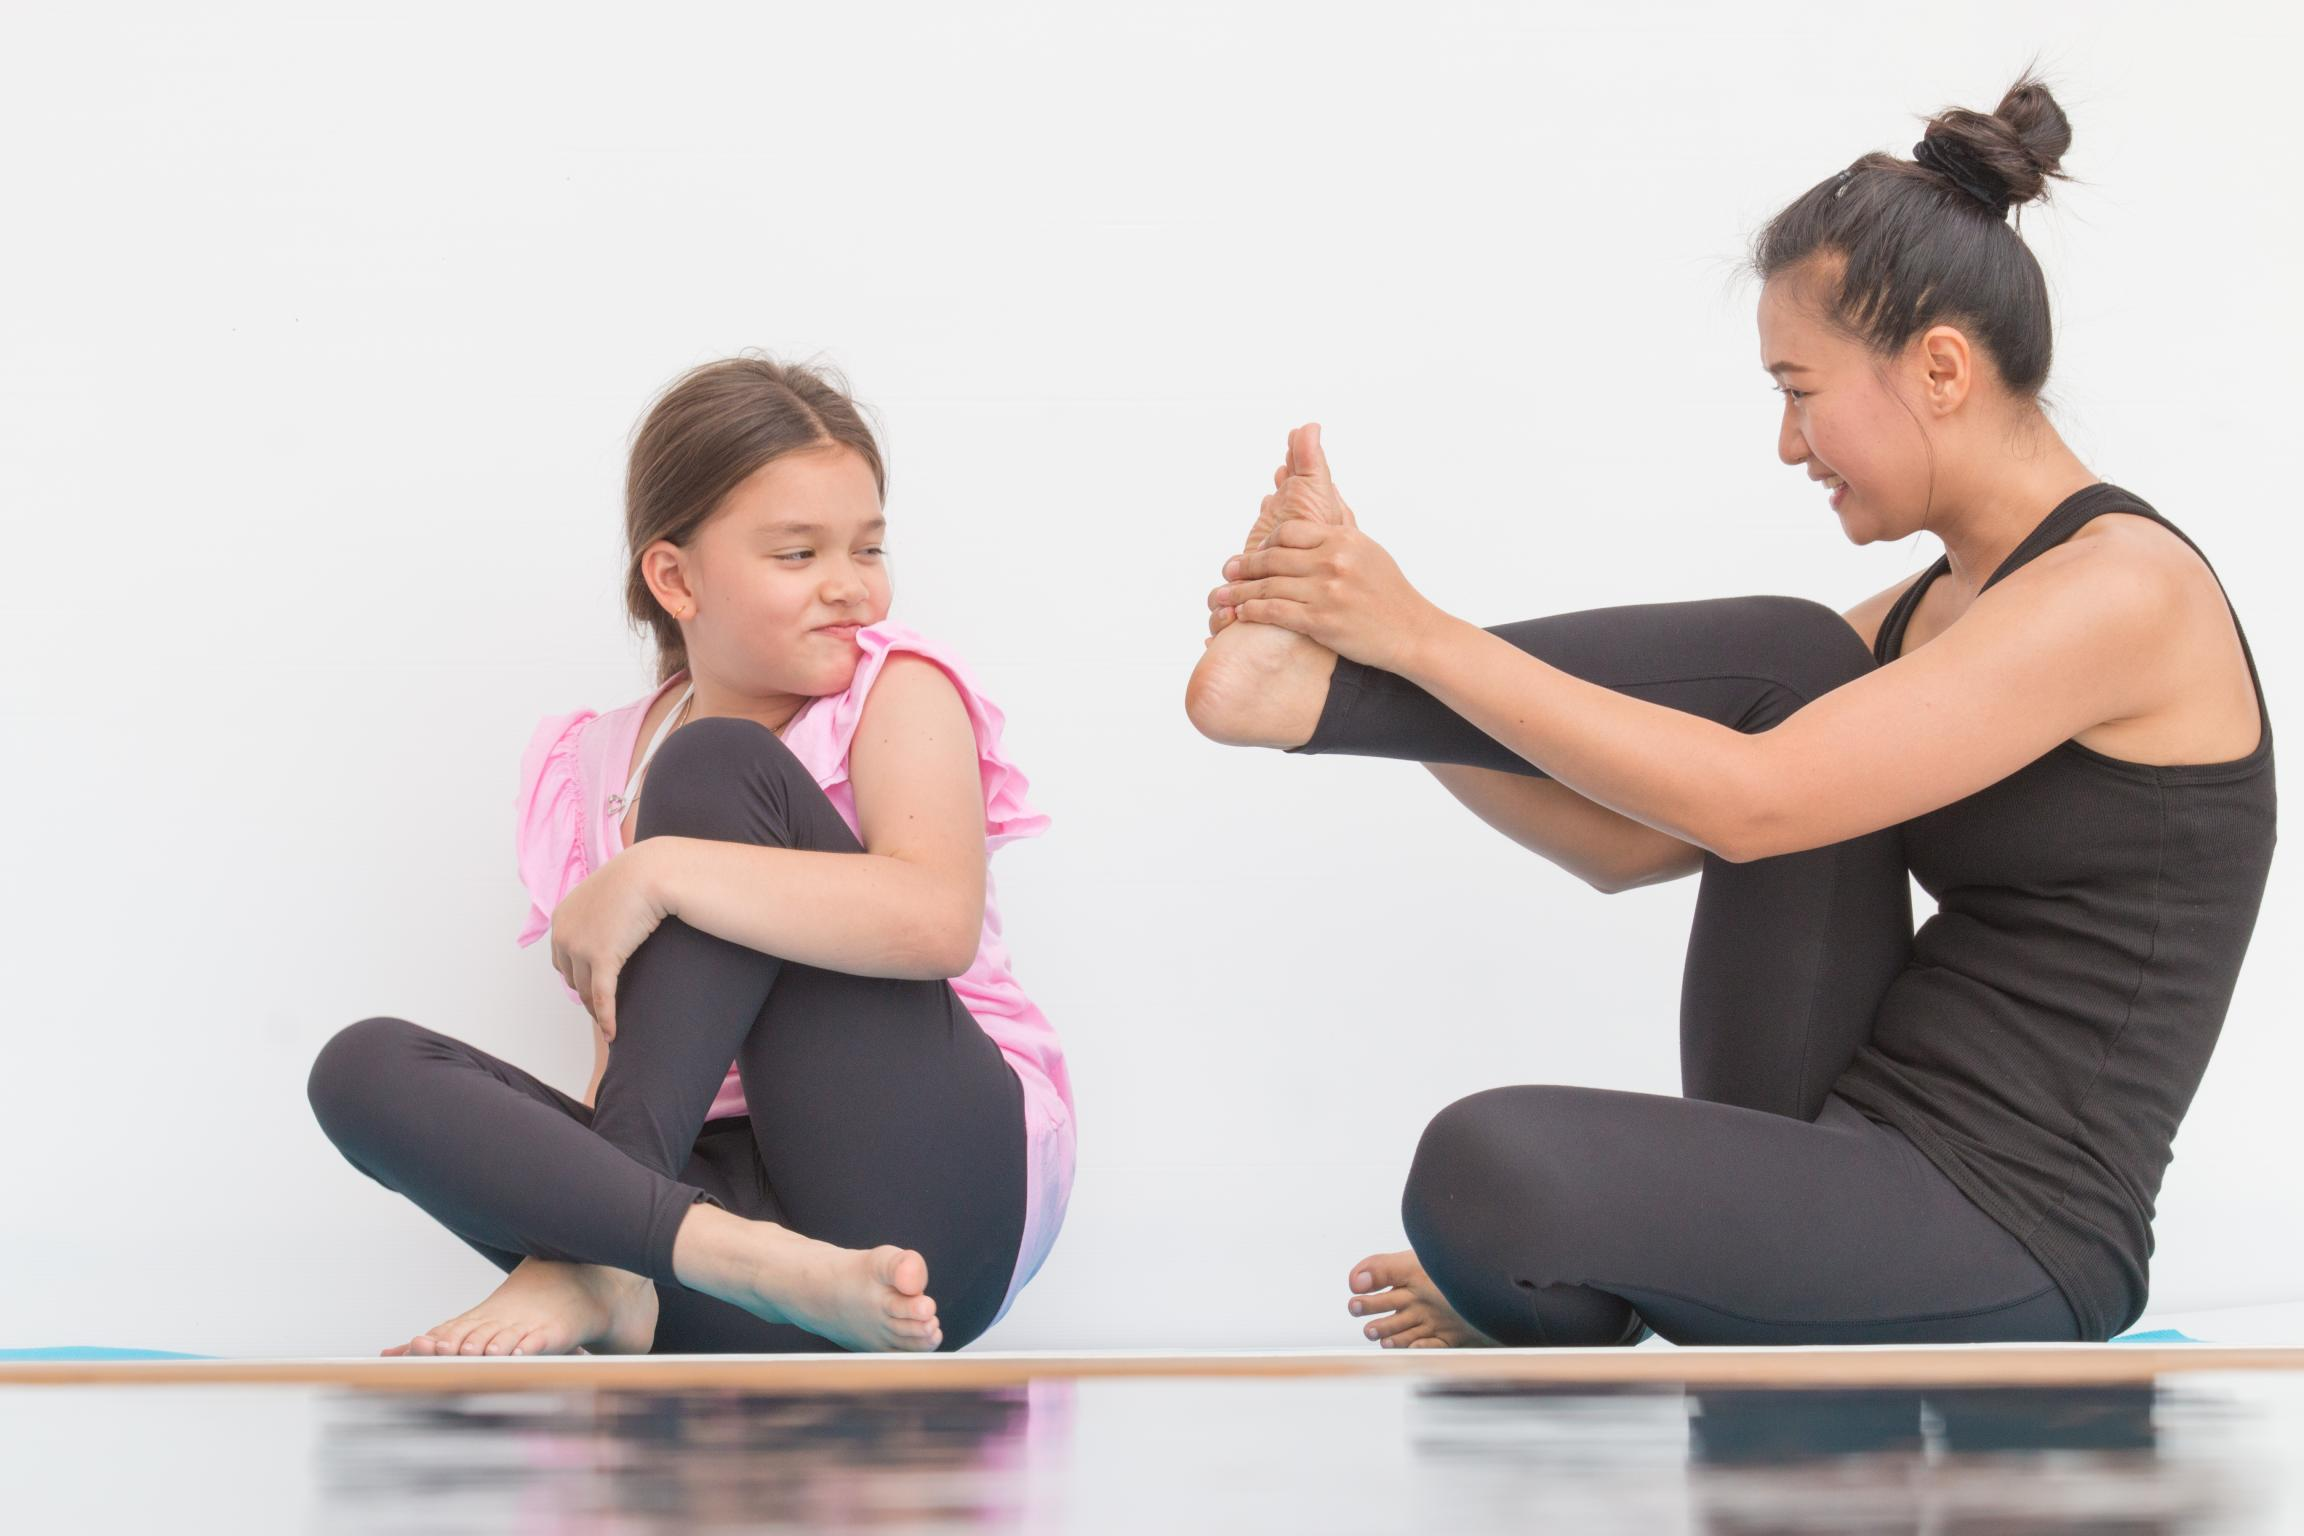 Physical Activity and Yoga Photo